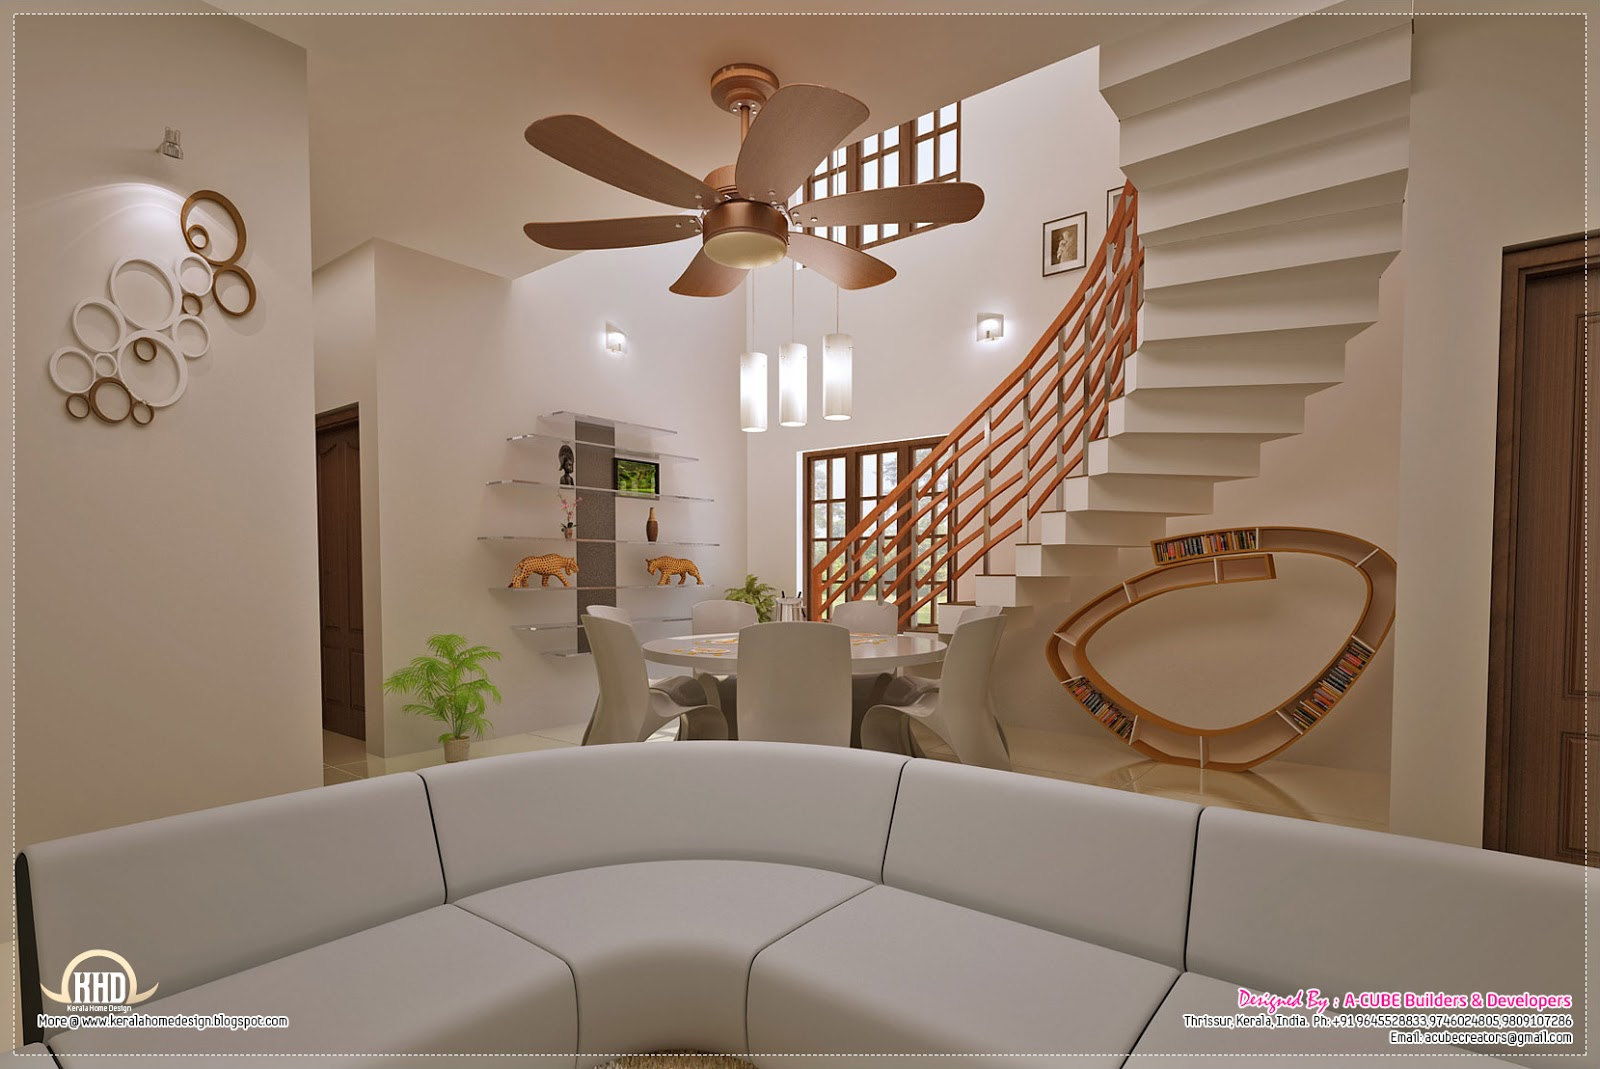 Awesome interior decoration ideas home kerala plans for Beautiful home designs interior